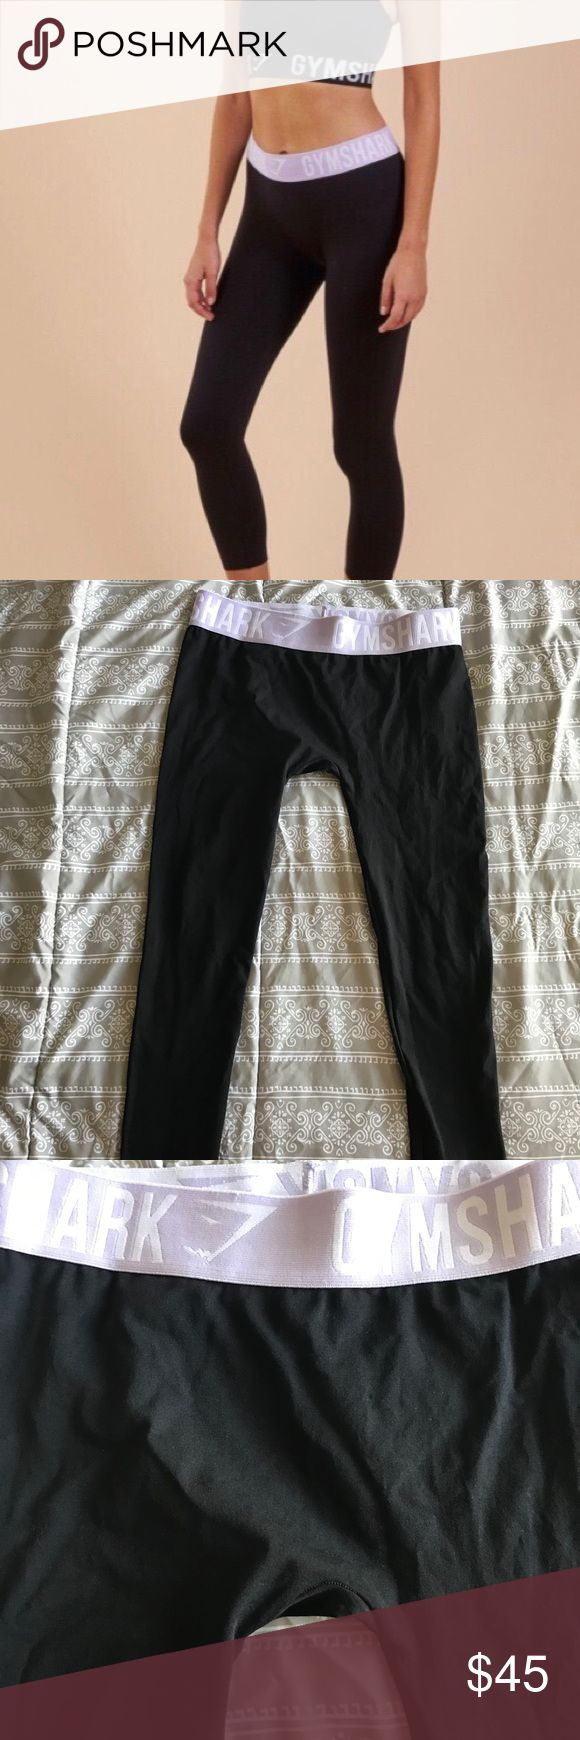 GYMSHARK Fit Cropped Leggings Black/Pastel Lilac GYMSHARK Fit Cropped Leggings Black/Pastel Lilac. Excellent used condition. Currently sold out online. FAST SHIPPER🌟 BUNDLE & SAVE💰 AMBASSADOR😎 NO TRADES🙅🏻♀️ NO PRICE DISCUSSIONS IN COMMENTS PLEASE USE OFFER BUTTON🤝 YOUR ORDER IS SUPPORTING A FAMILY AND A DREAM. THANK YOU 🙏🏼 Gymshark Pants